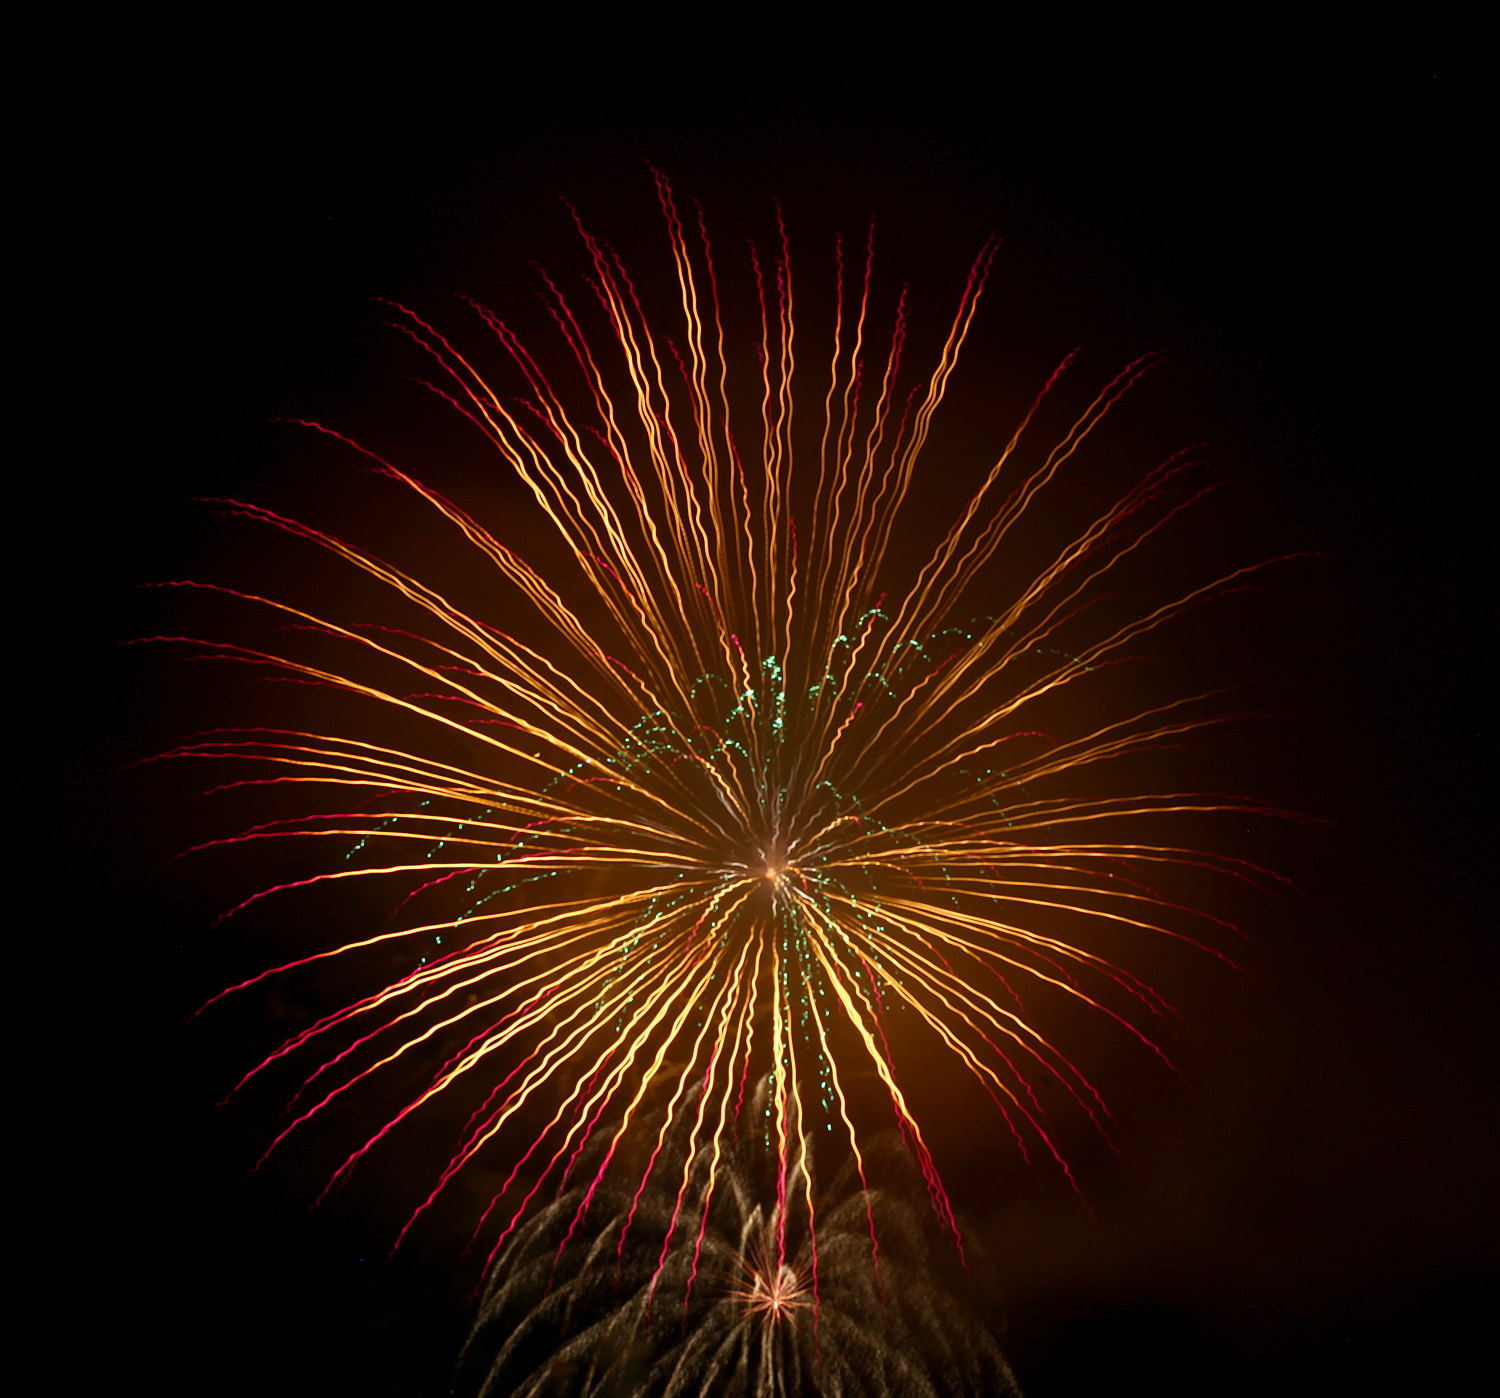 county fair fireworks img aw author sava gregory and verena